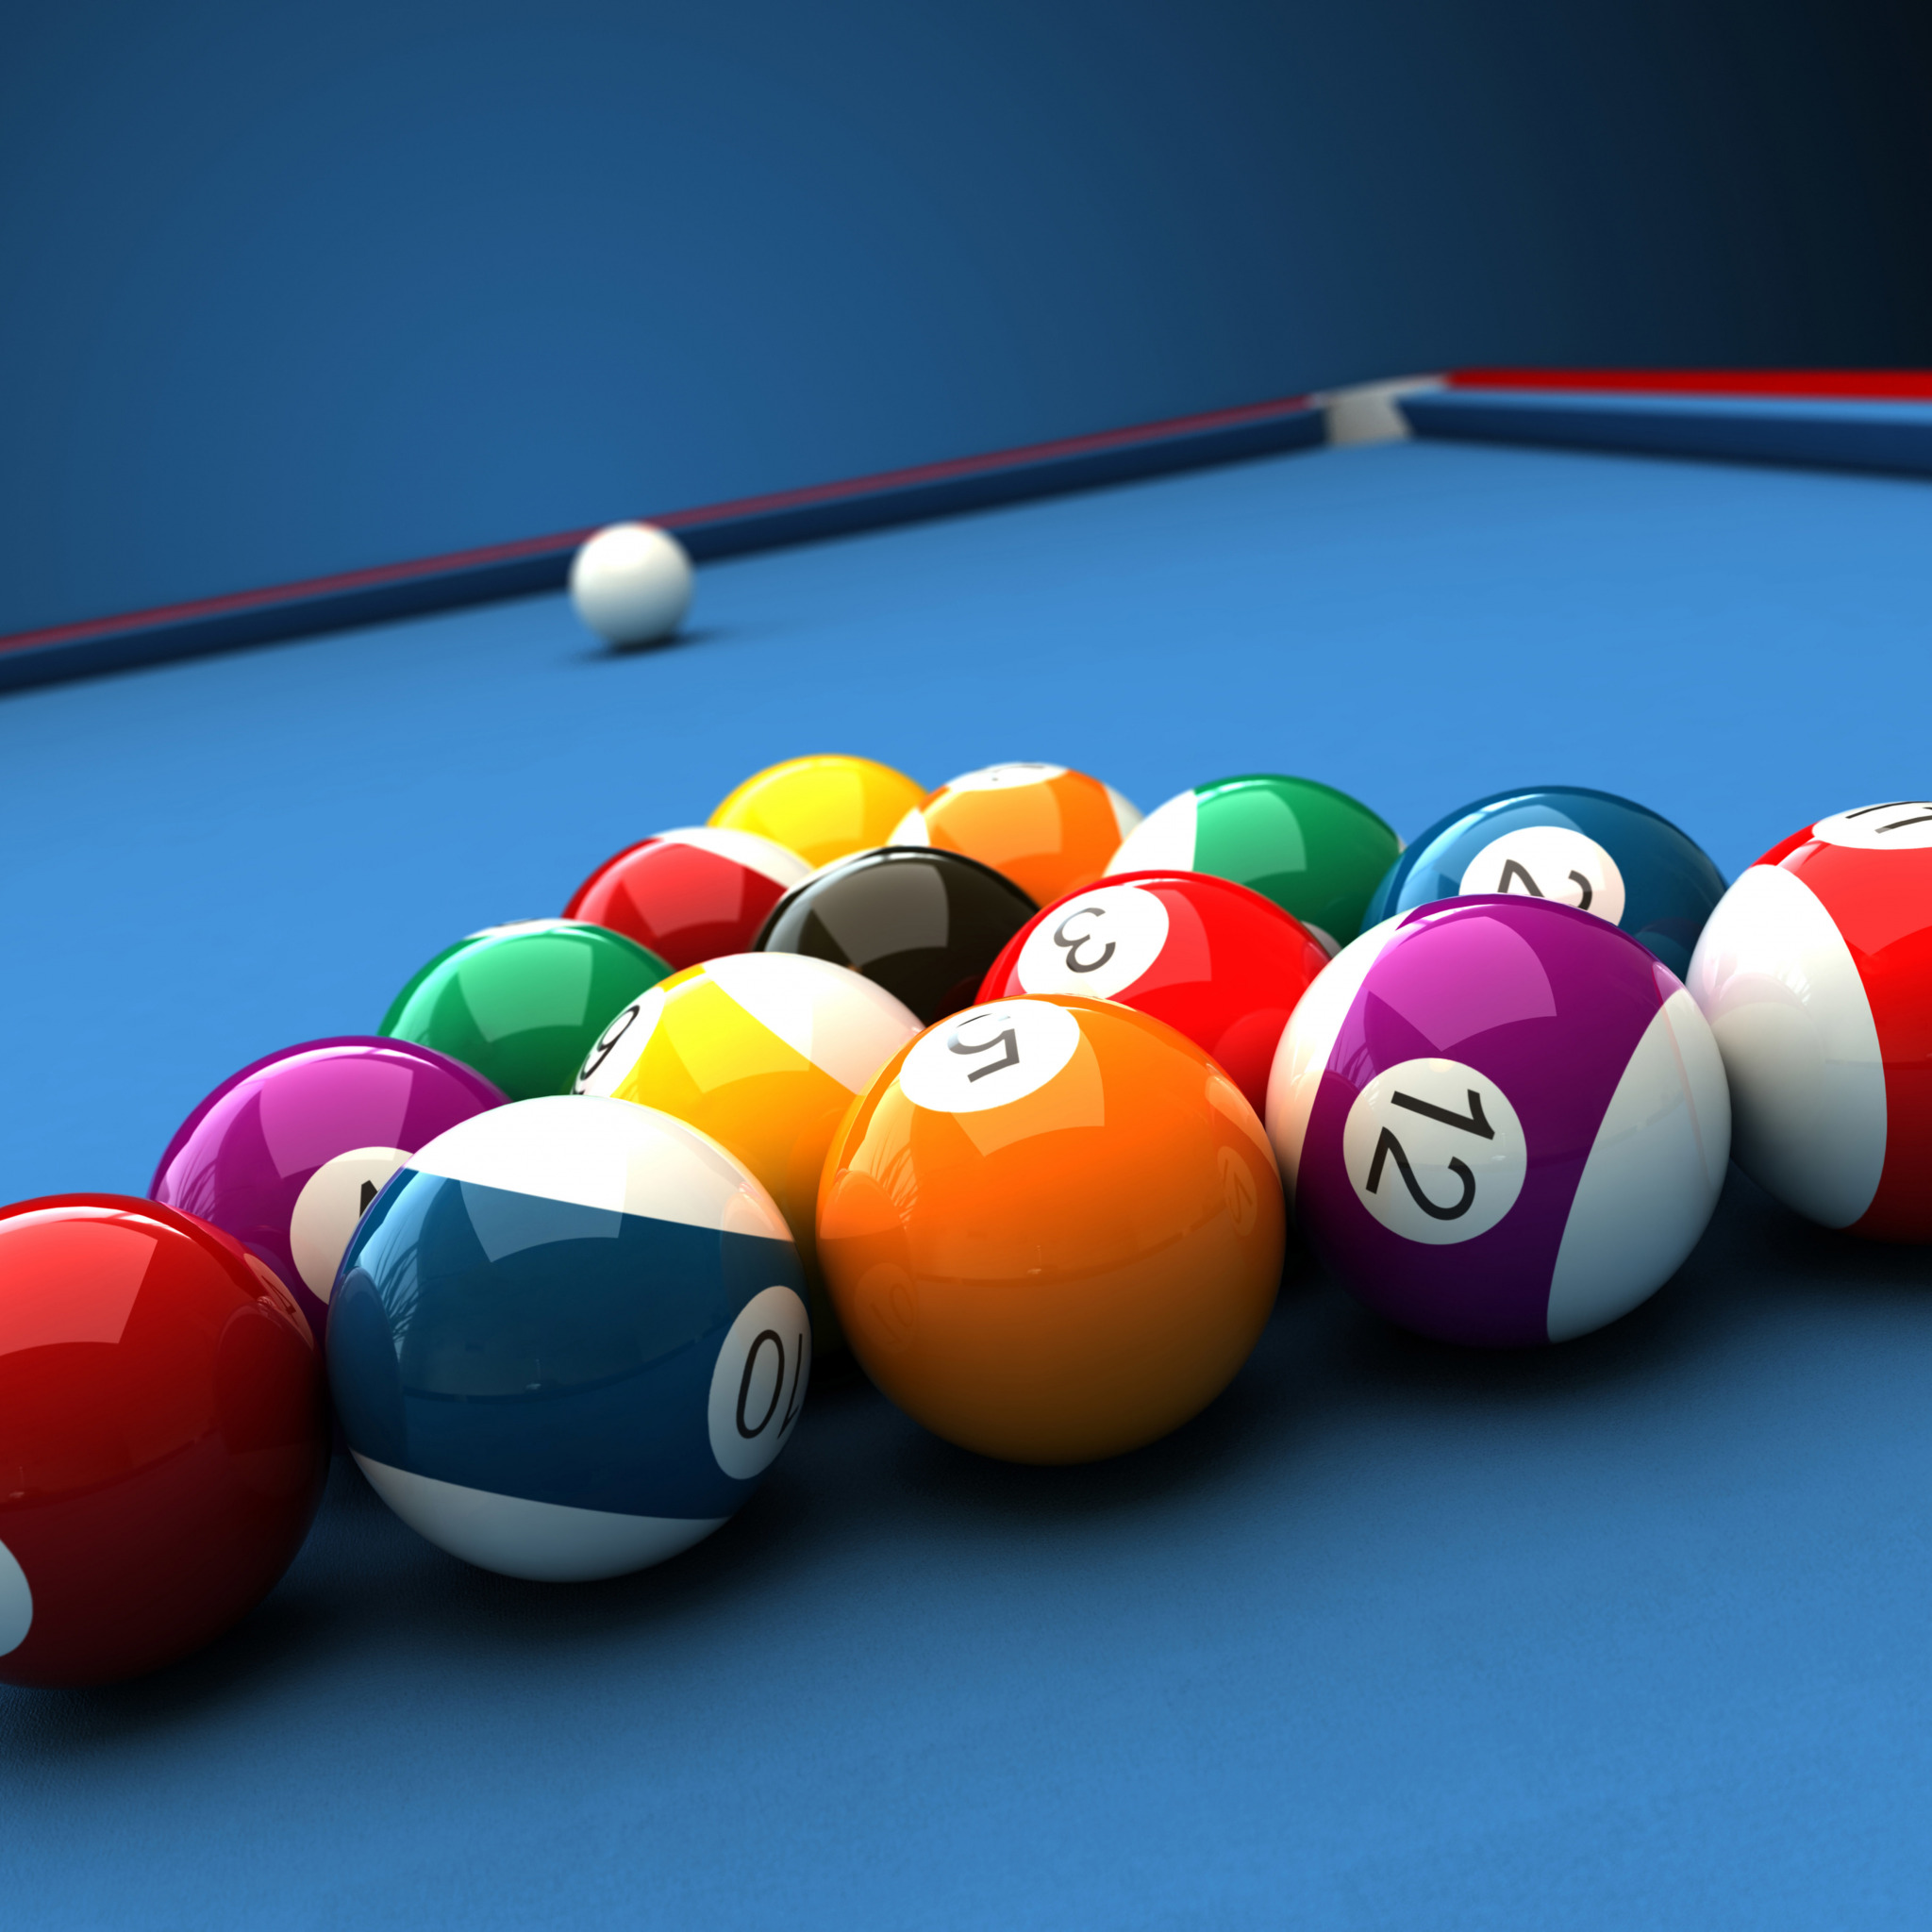 Download Wallpaper White, Abstraction, Table, Balls, The Game, Ball,  Billiards, Art, Pyramid, Pool, Triangle, Pool, Billiards, Wallpaper.,  Billiard, ...